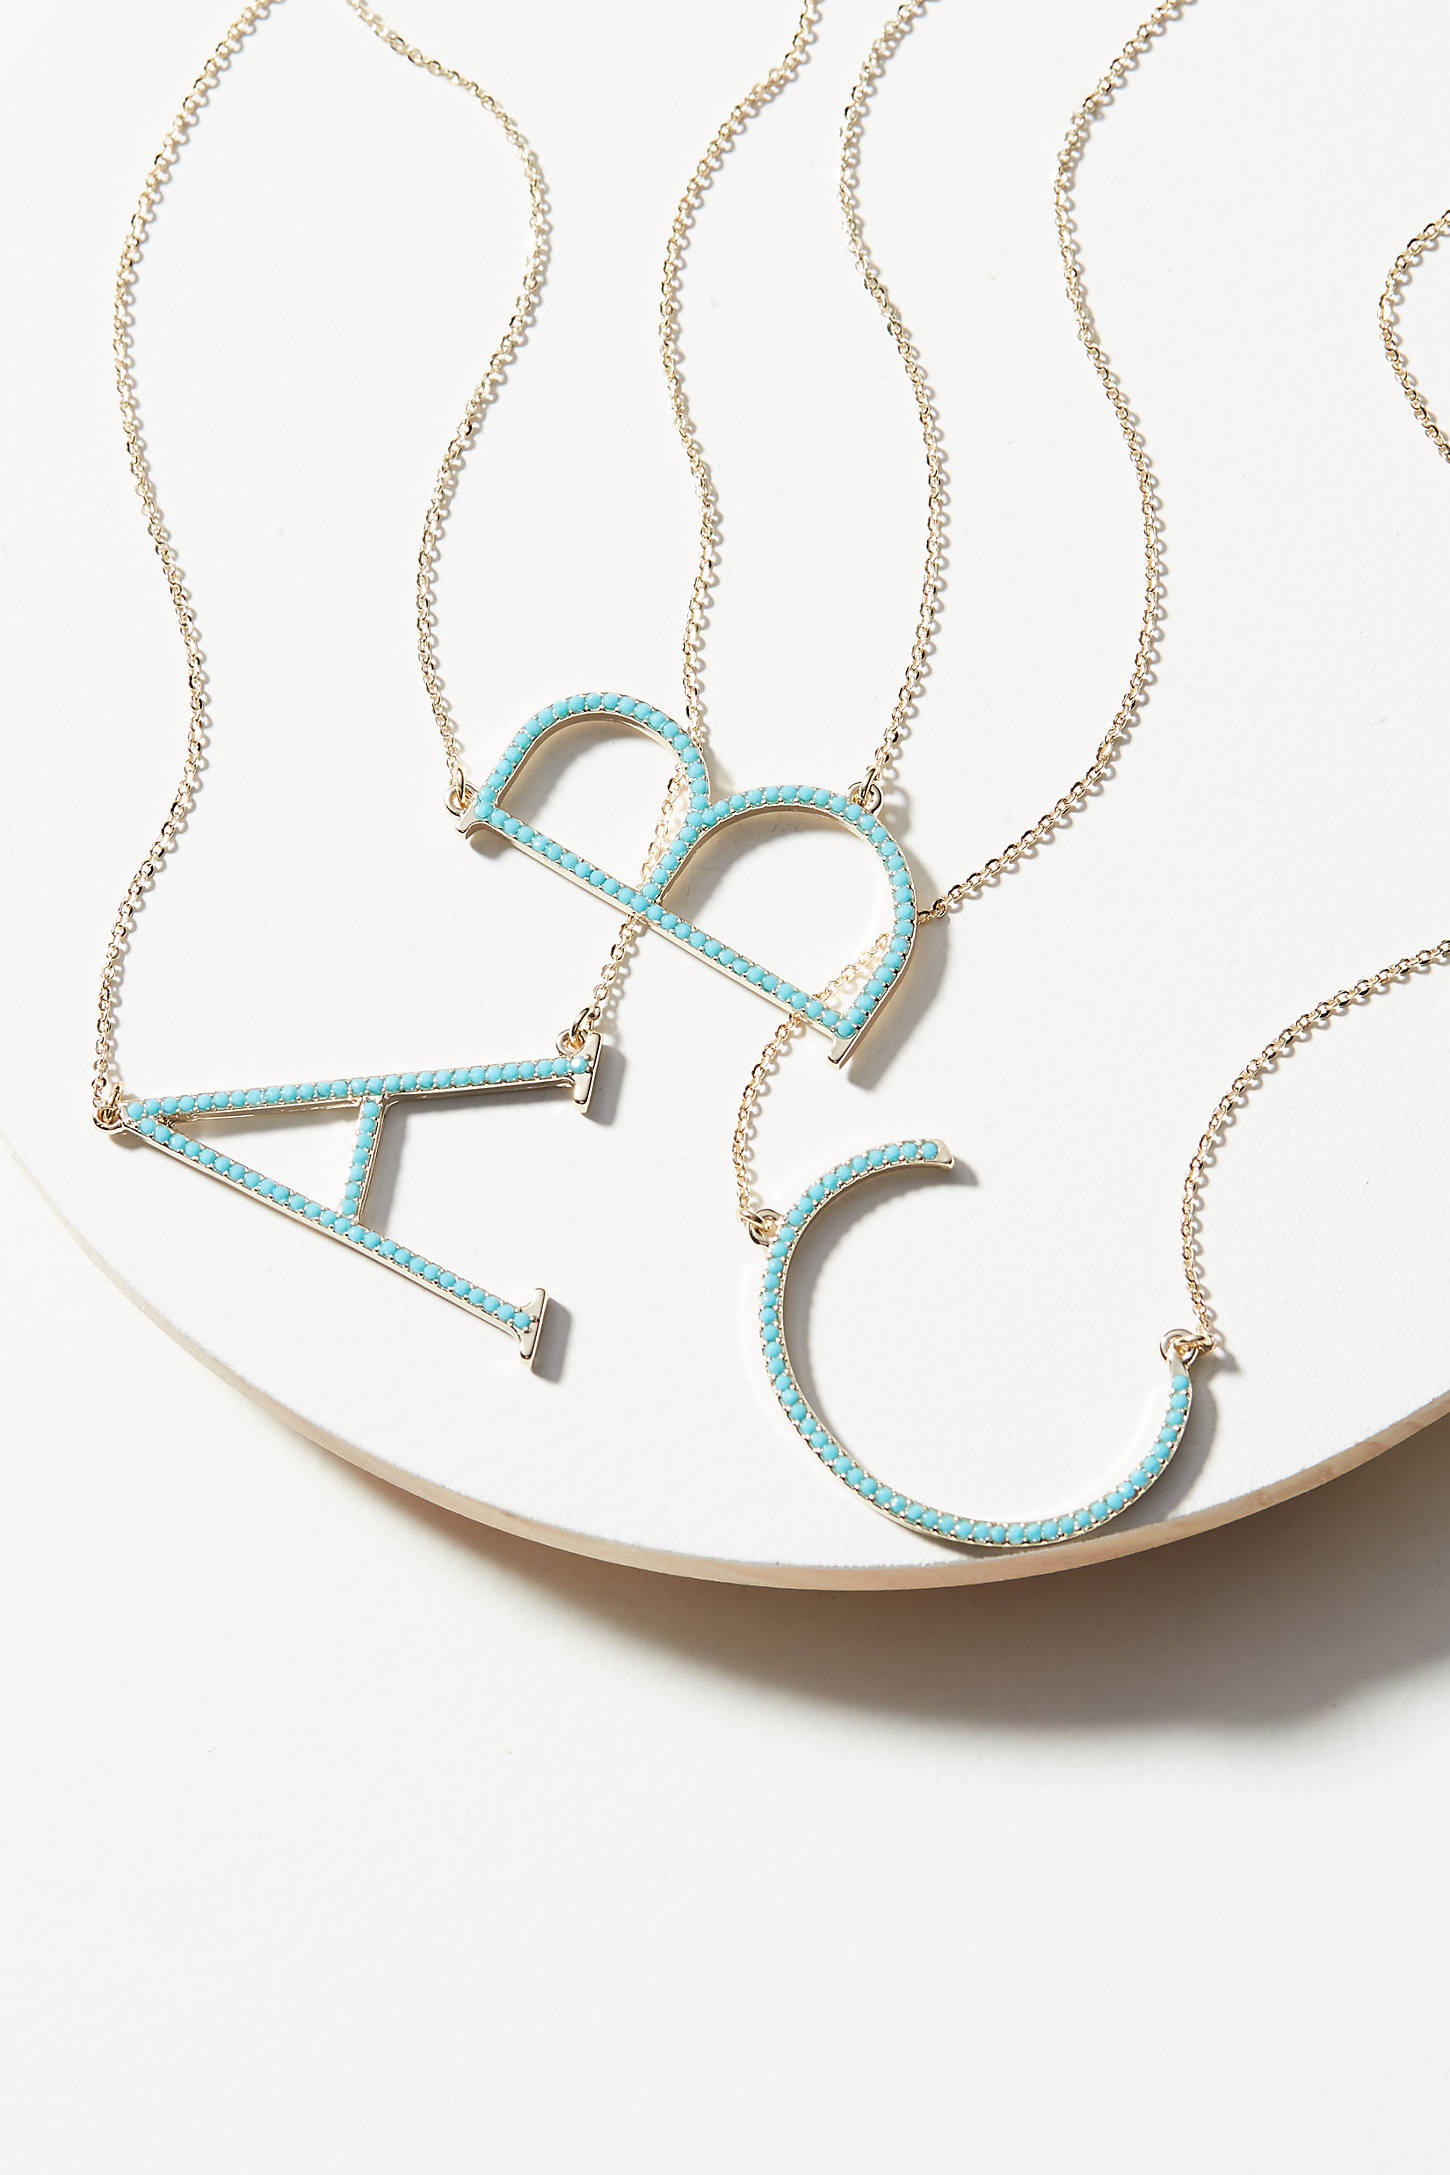 Pave Monogram Necklace